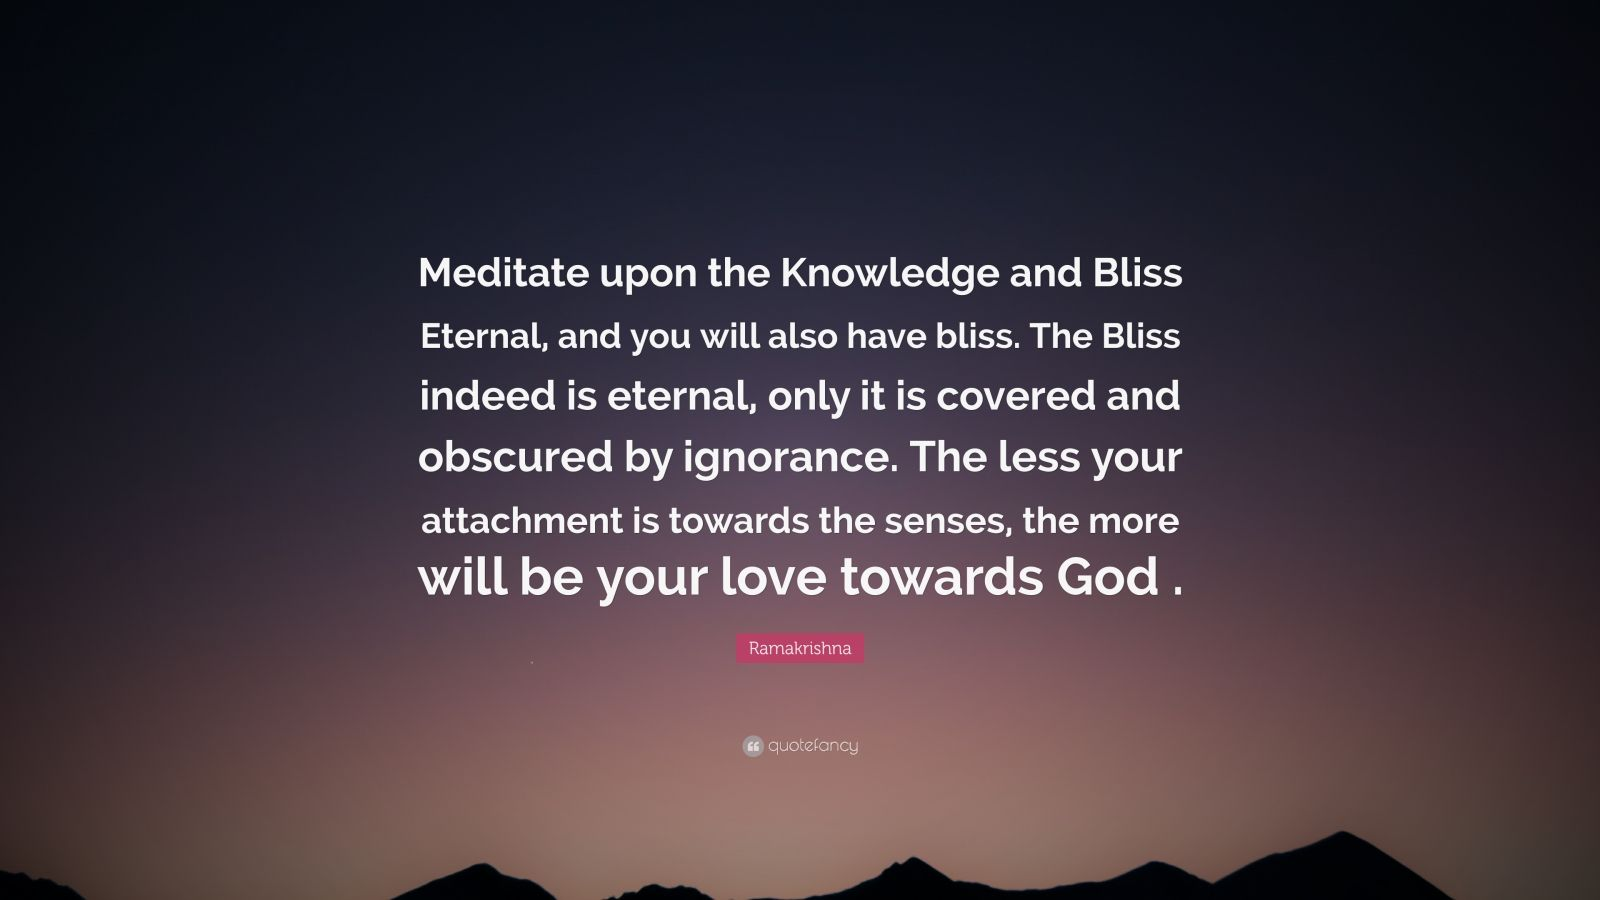 "Ramakrishna Quote: ""Meditate upon the Knowledge and Bliss Eternal, and you will also have bliss. The Bliss indeed is eternal, only it is covered and obscured by ignorance. The less your attachment is towards the senses, the more will be your love towards God ."""